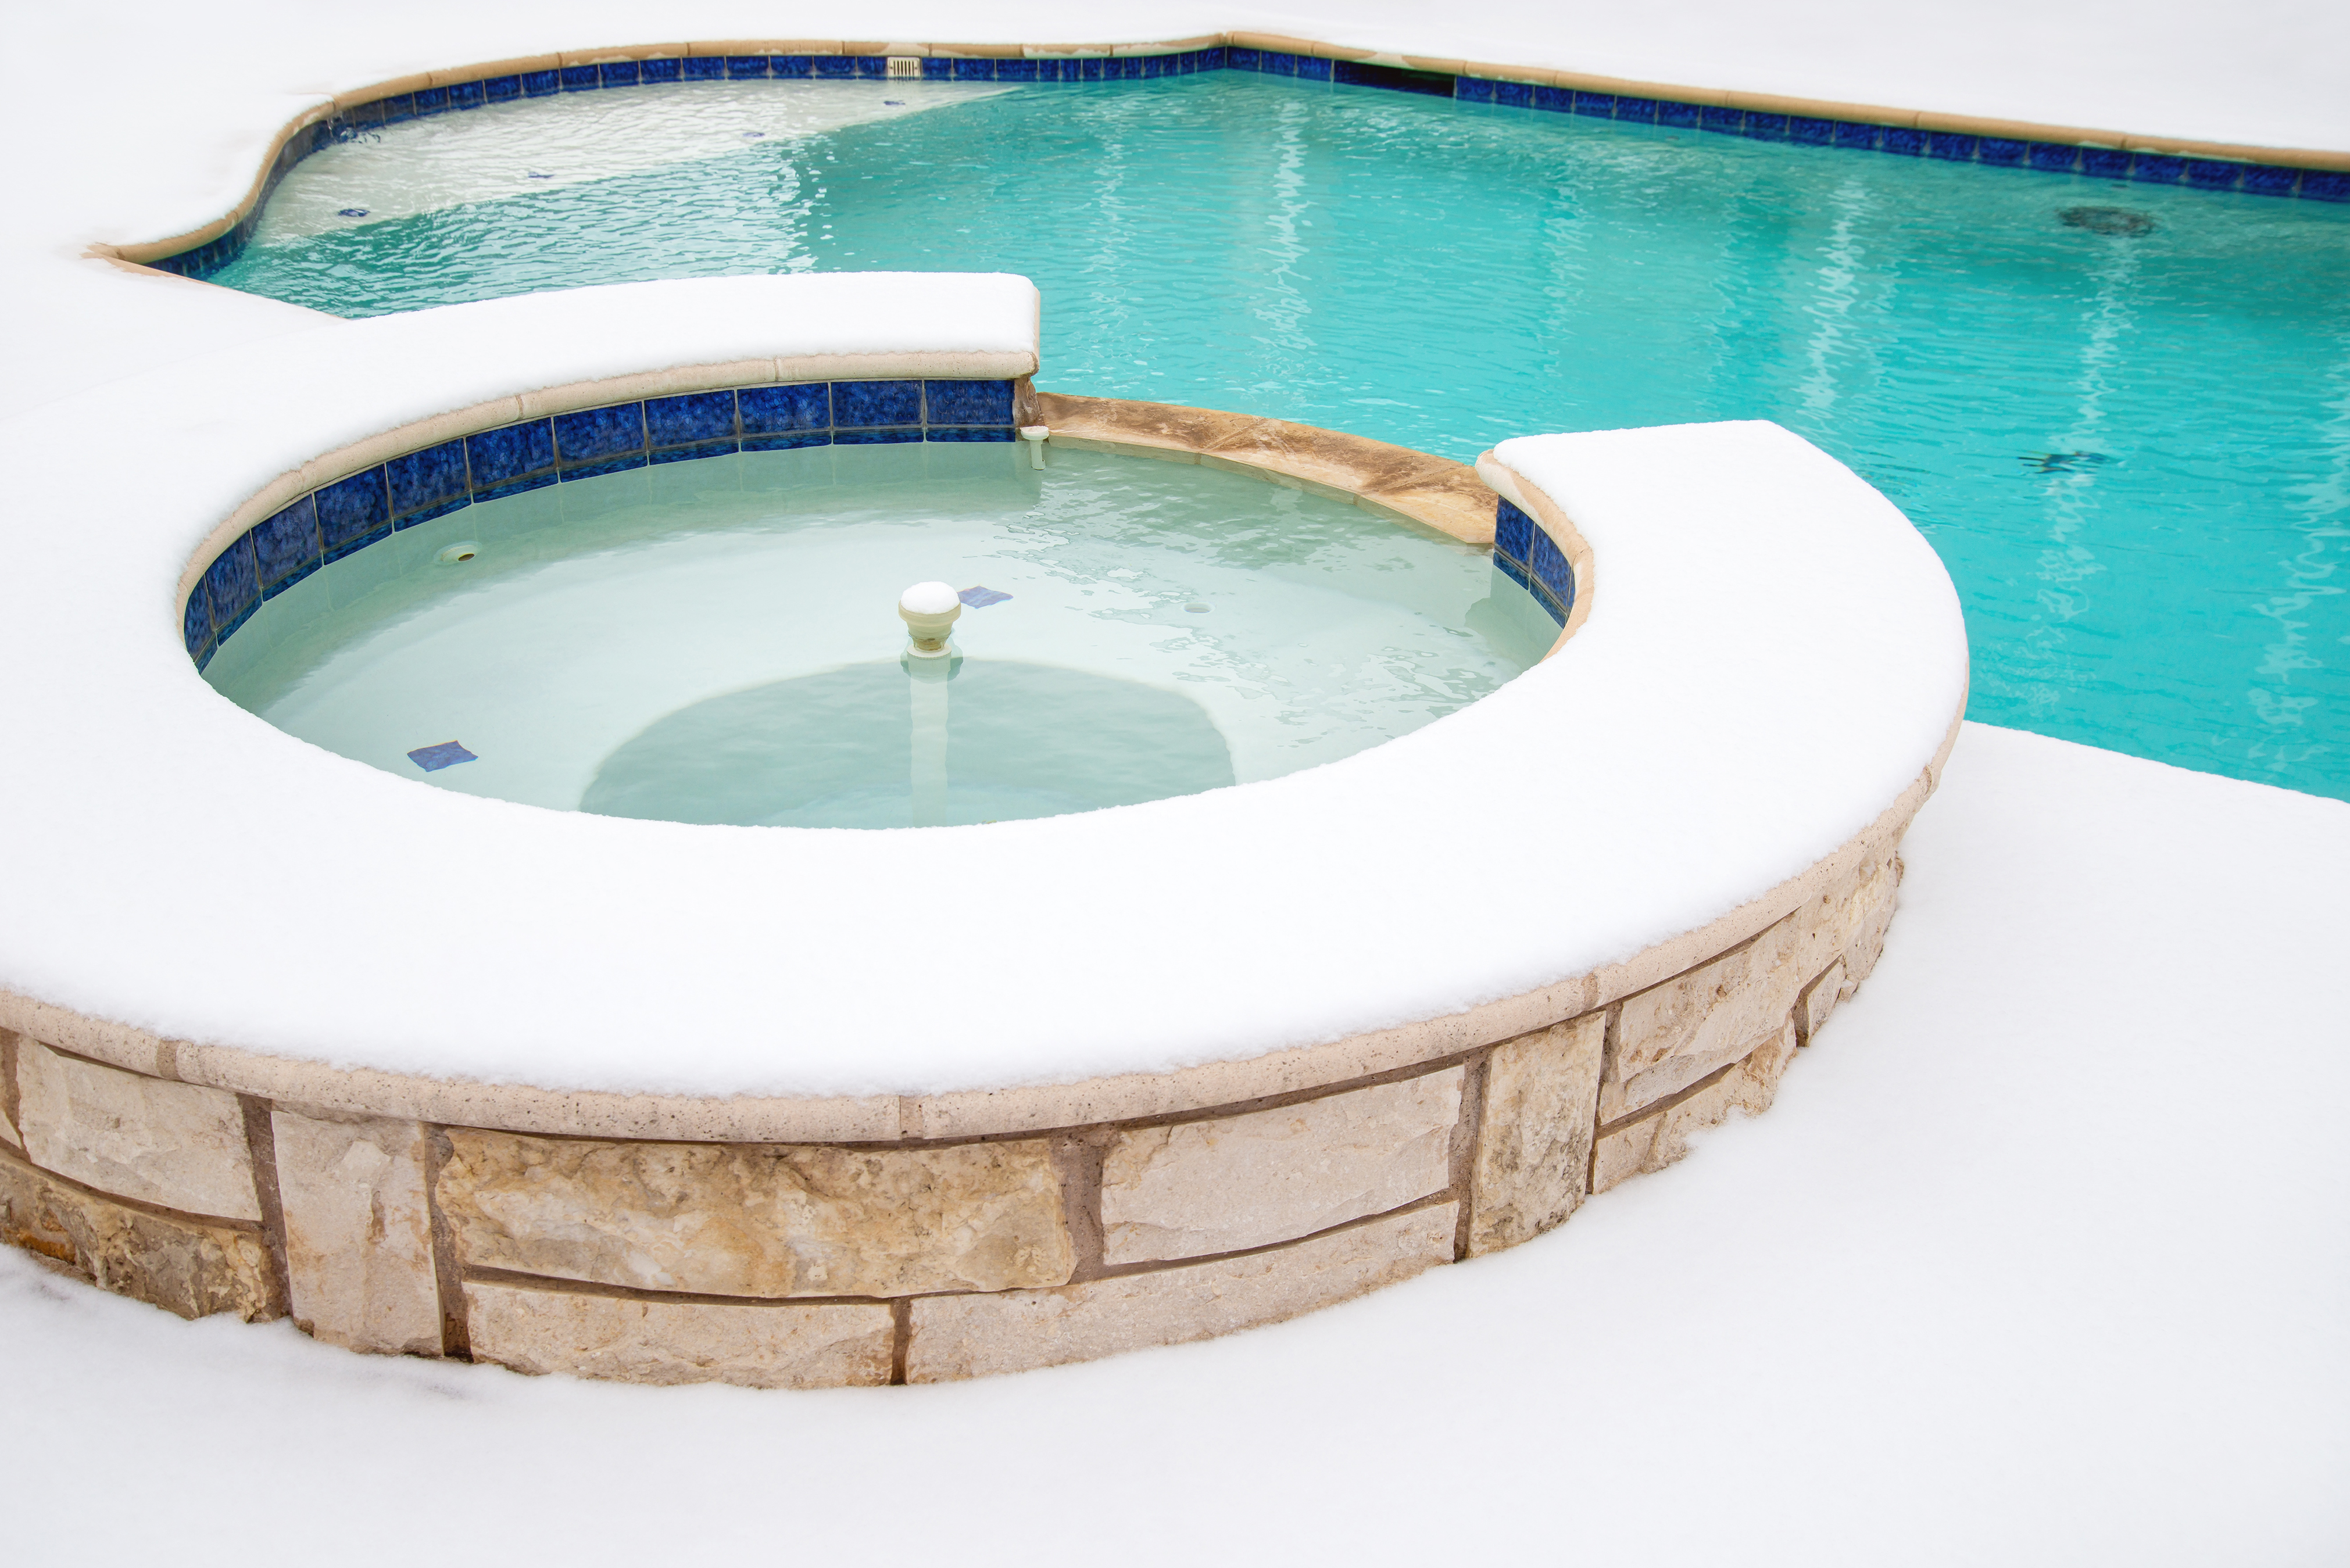 How Much Does it Cost to Run a Hot Tub in the Winter